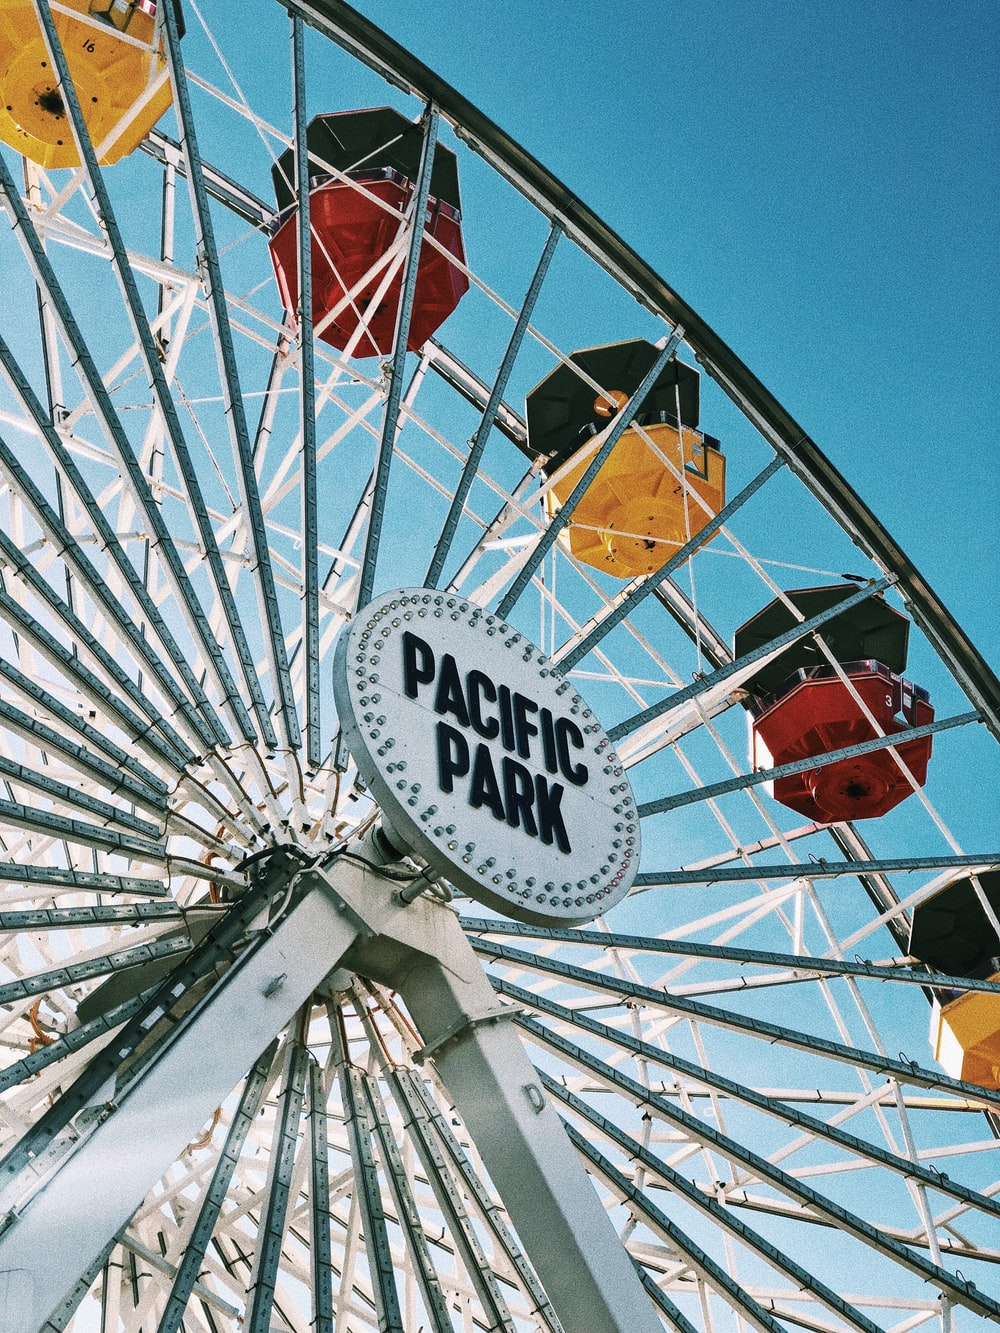 Pacific Park rollercoaster